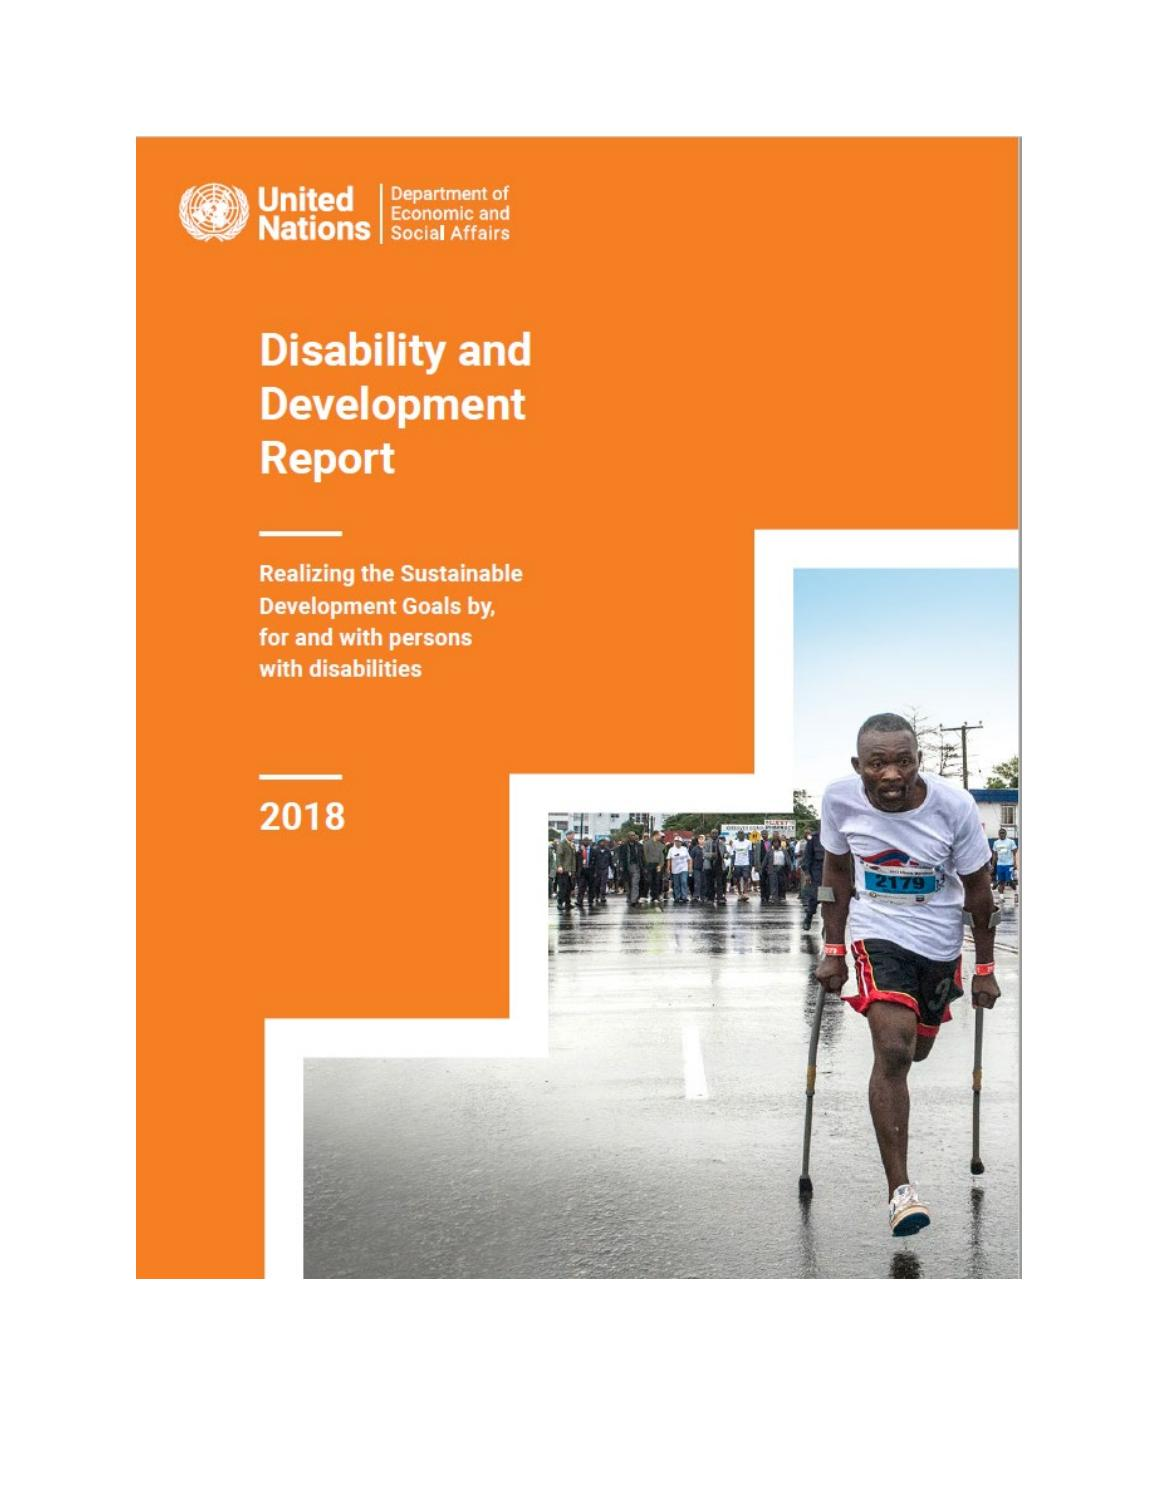 Disability and Development Report 2018 by United Nations